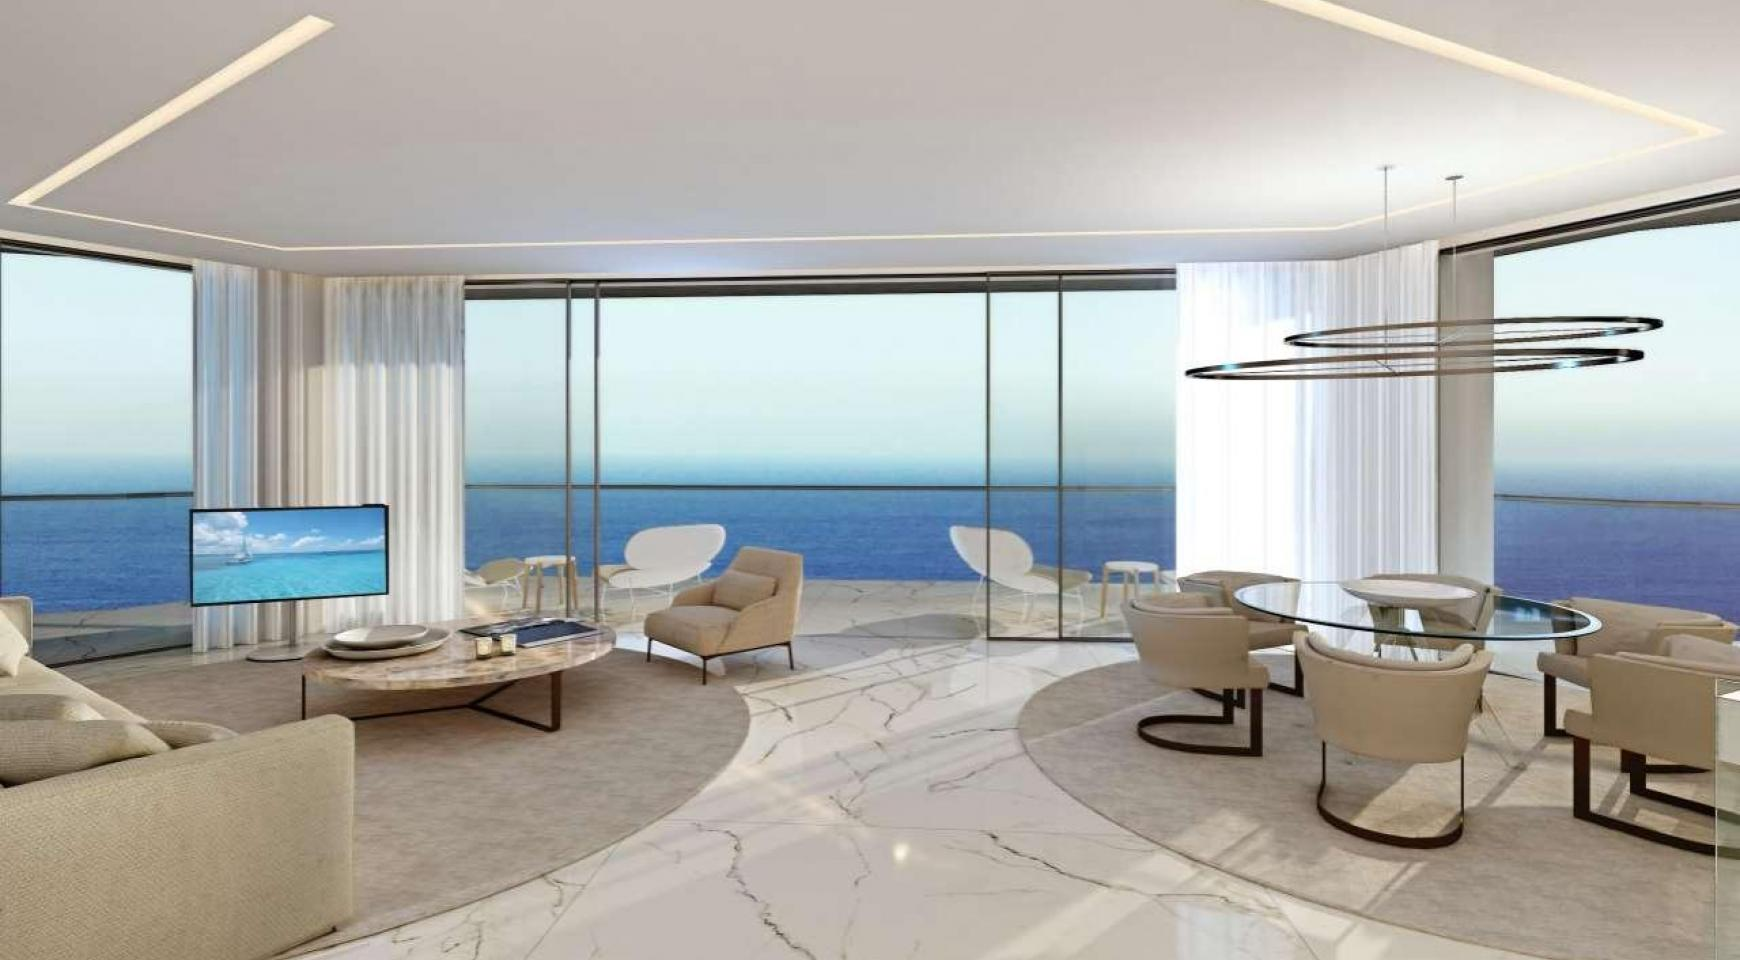 3 Bedroom Apartment in a New Project by the Sea in the City Centre - 7